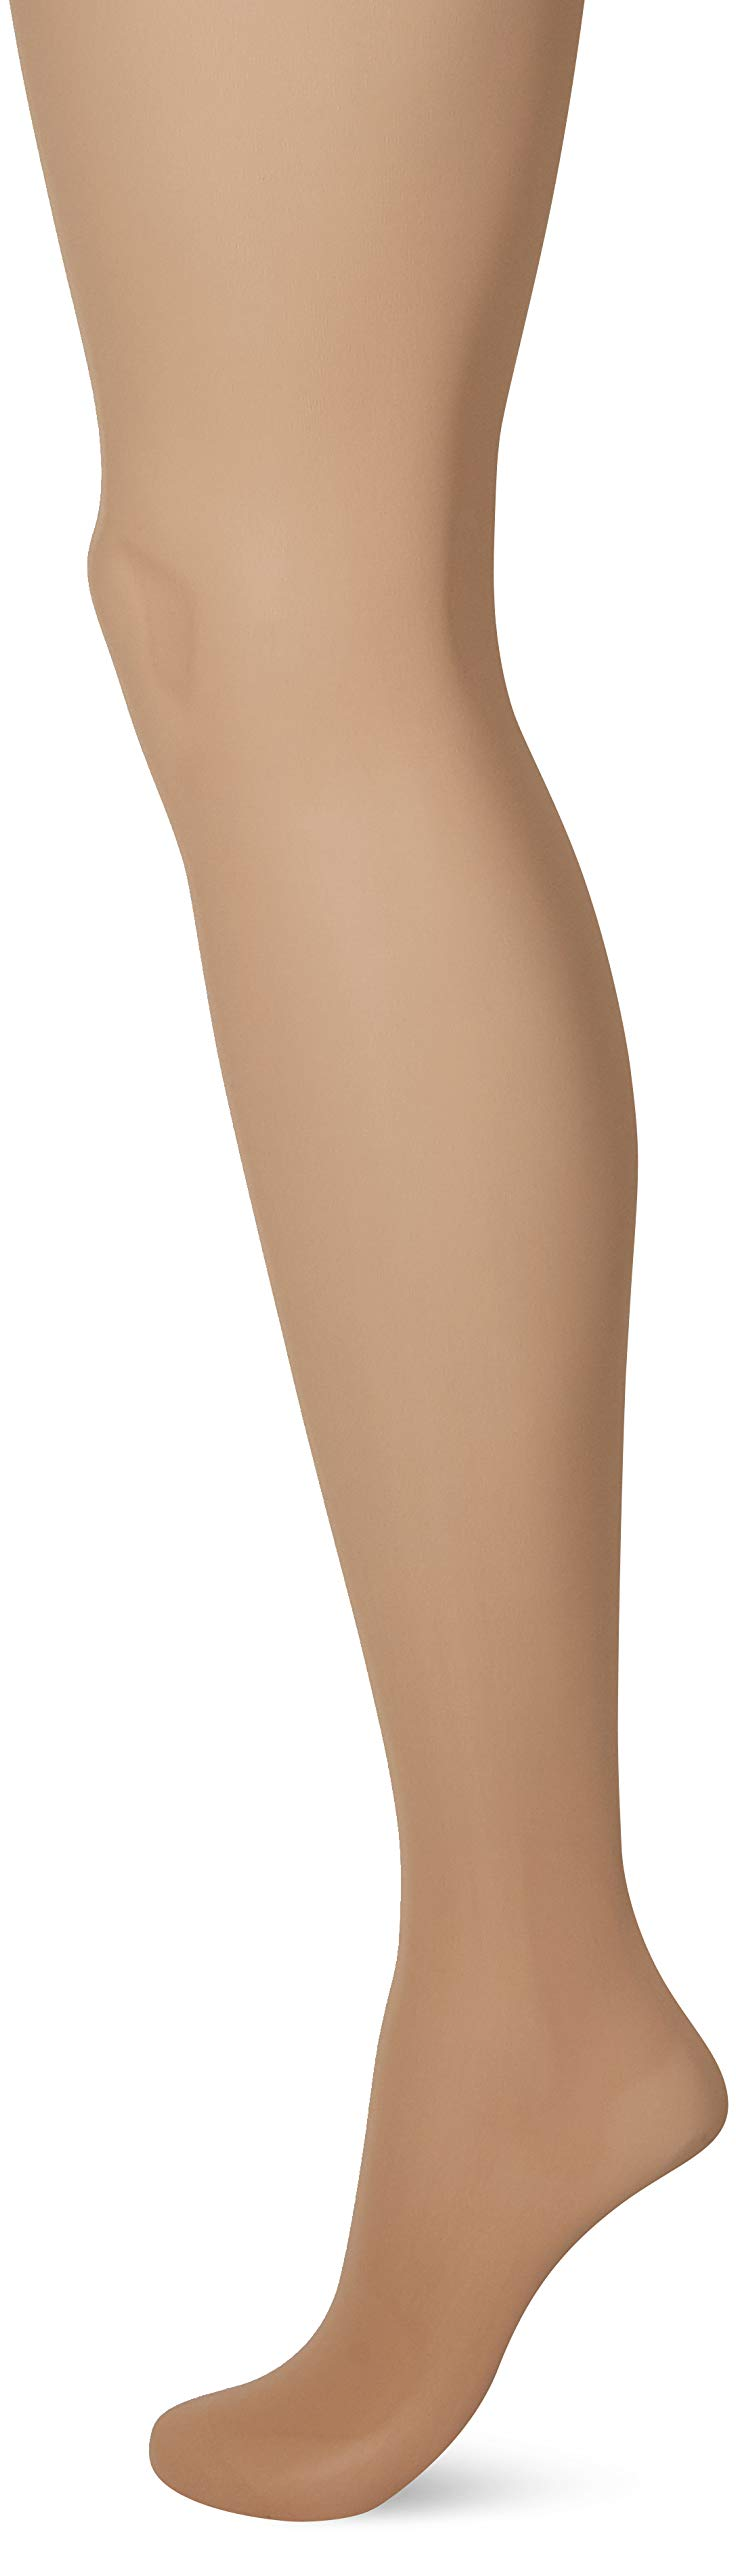 Wolford Women's Individual 10 Control Top Tights Cosmetic X-Large by Wolford